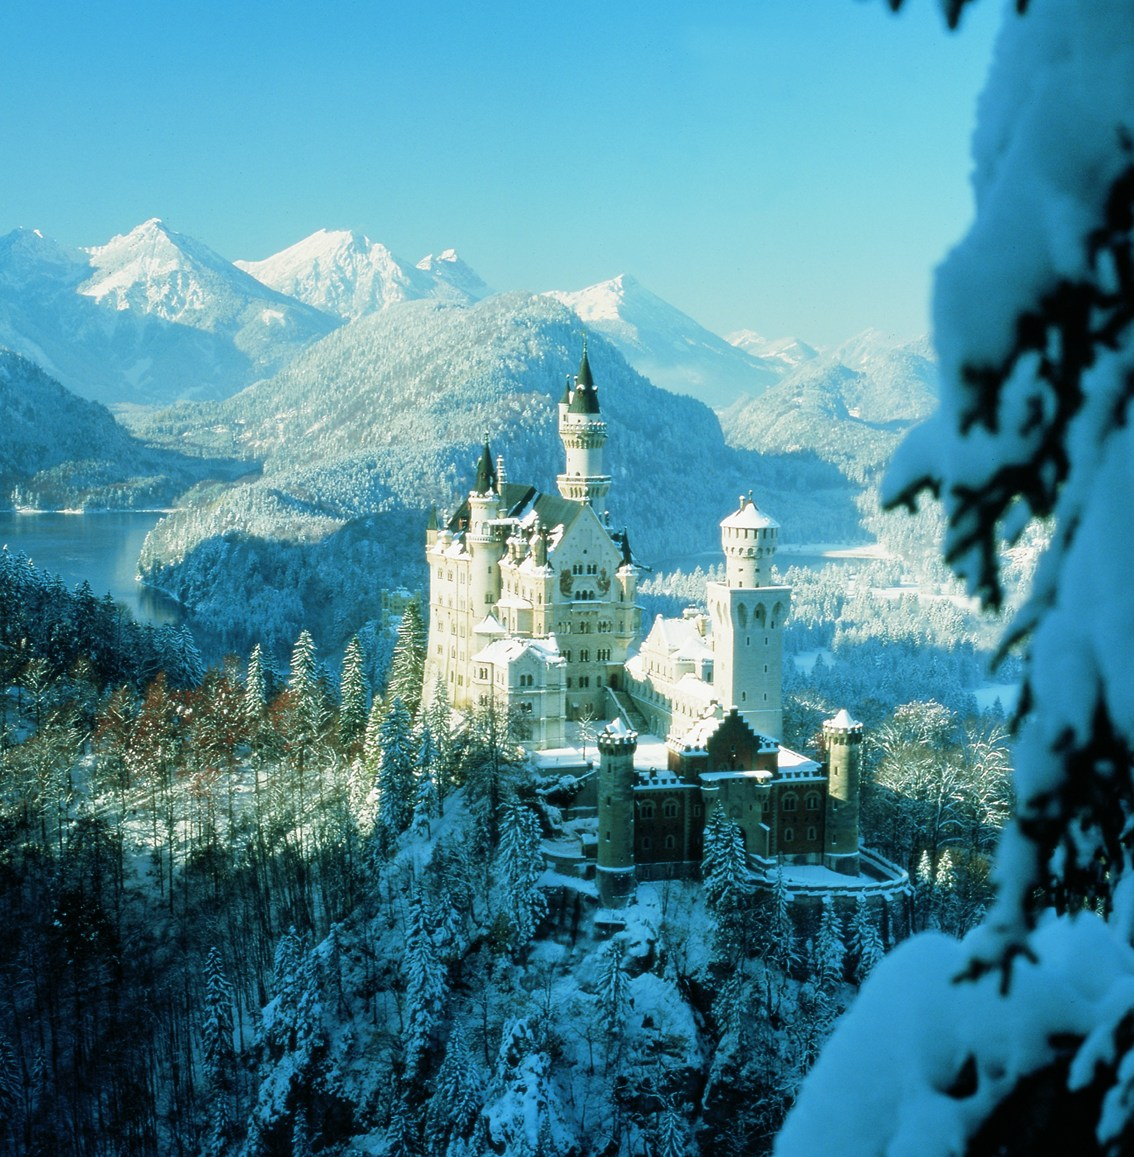 Bavarian Gothic Revival Castle Hogwarts Wallpaper Winter